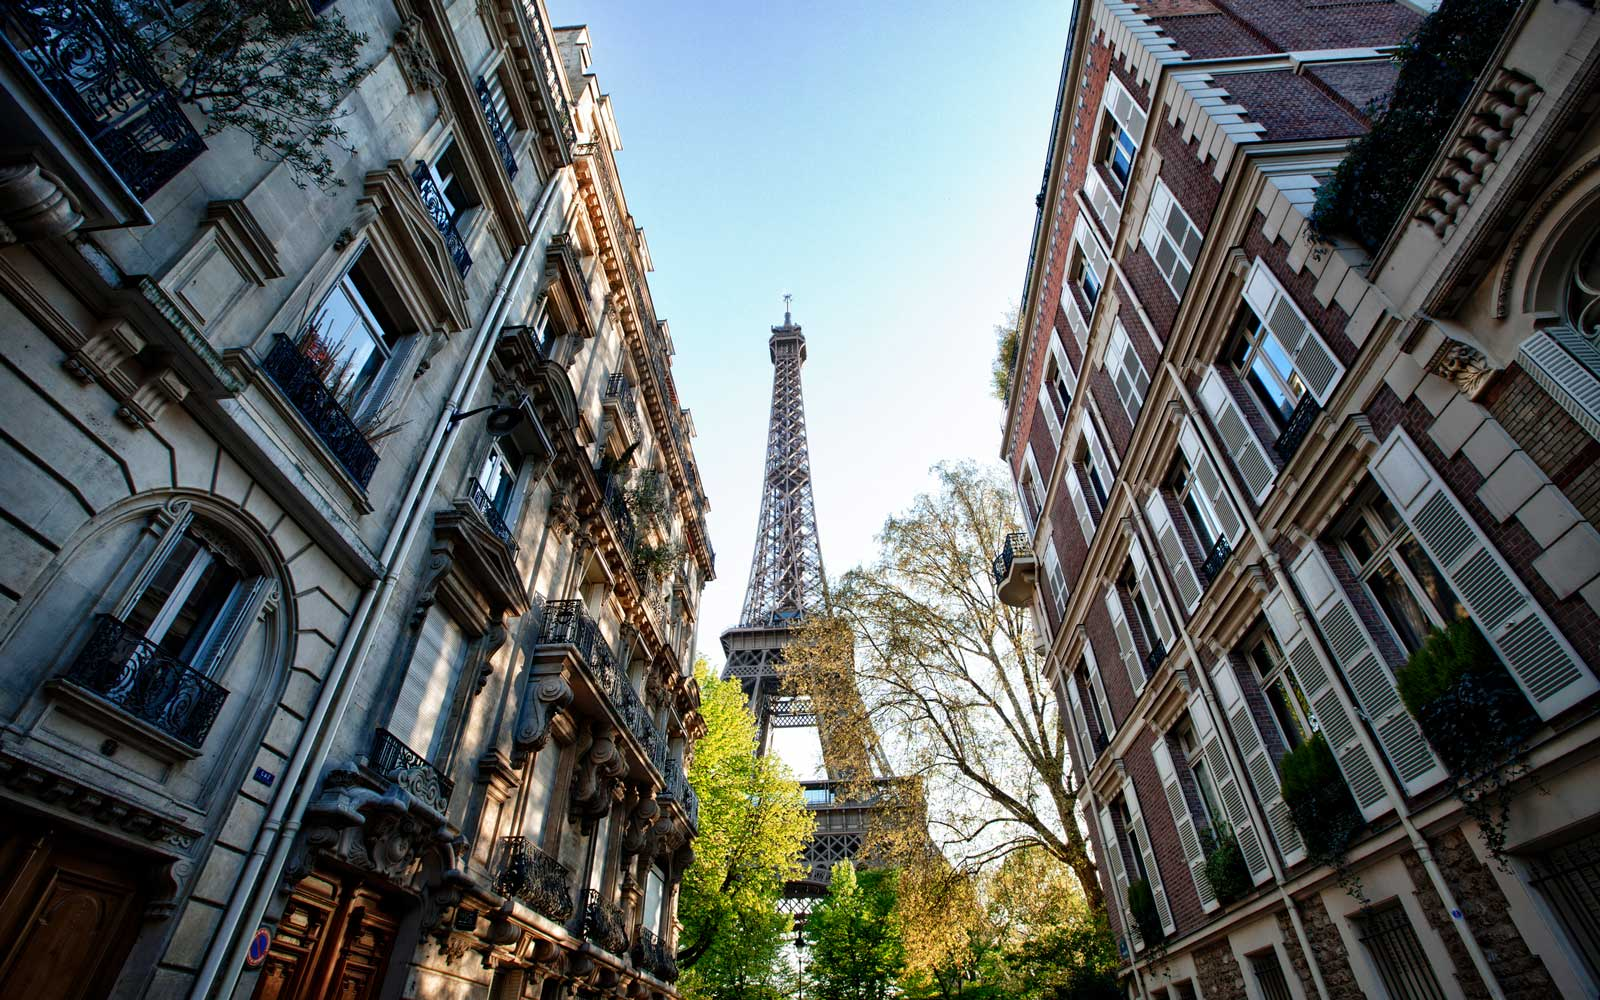 Neighborhood view of the Eiffel Tower, Paris, France